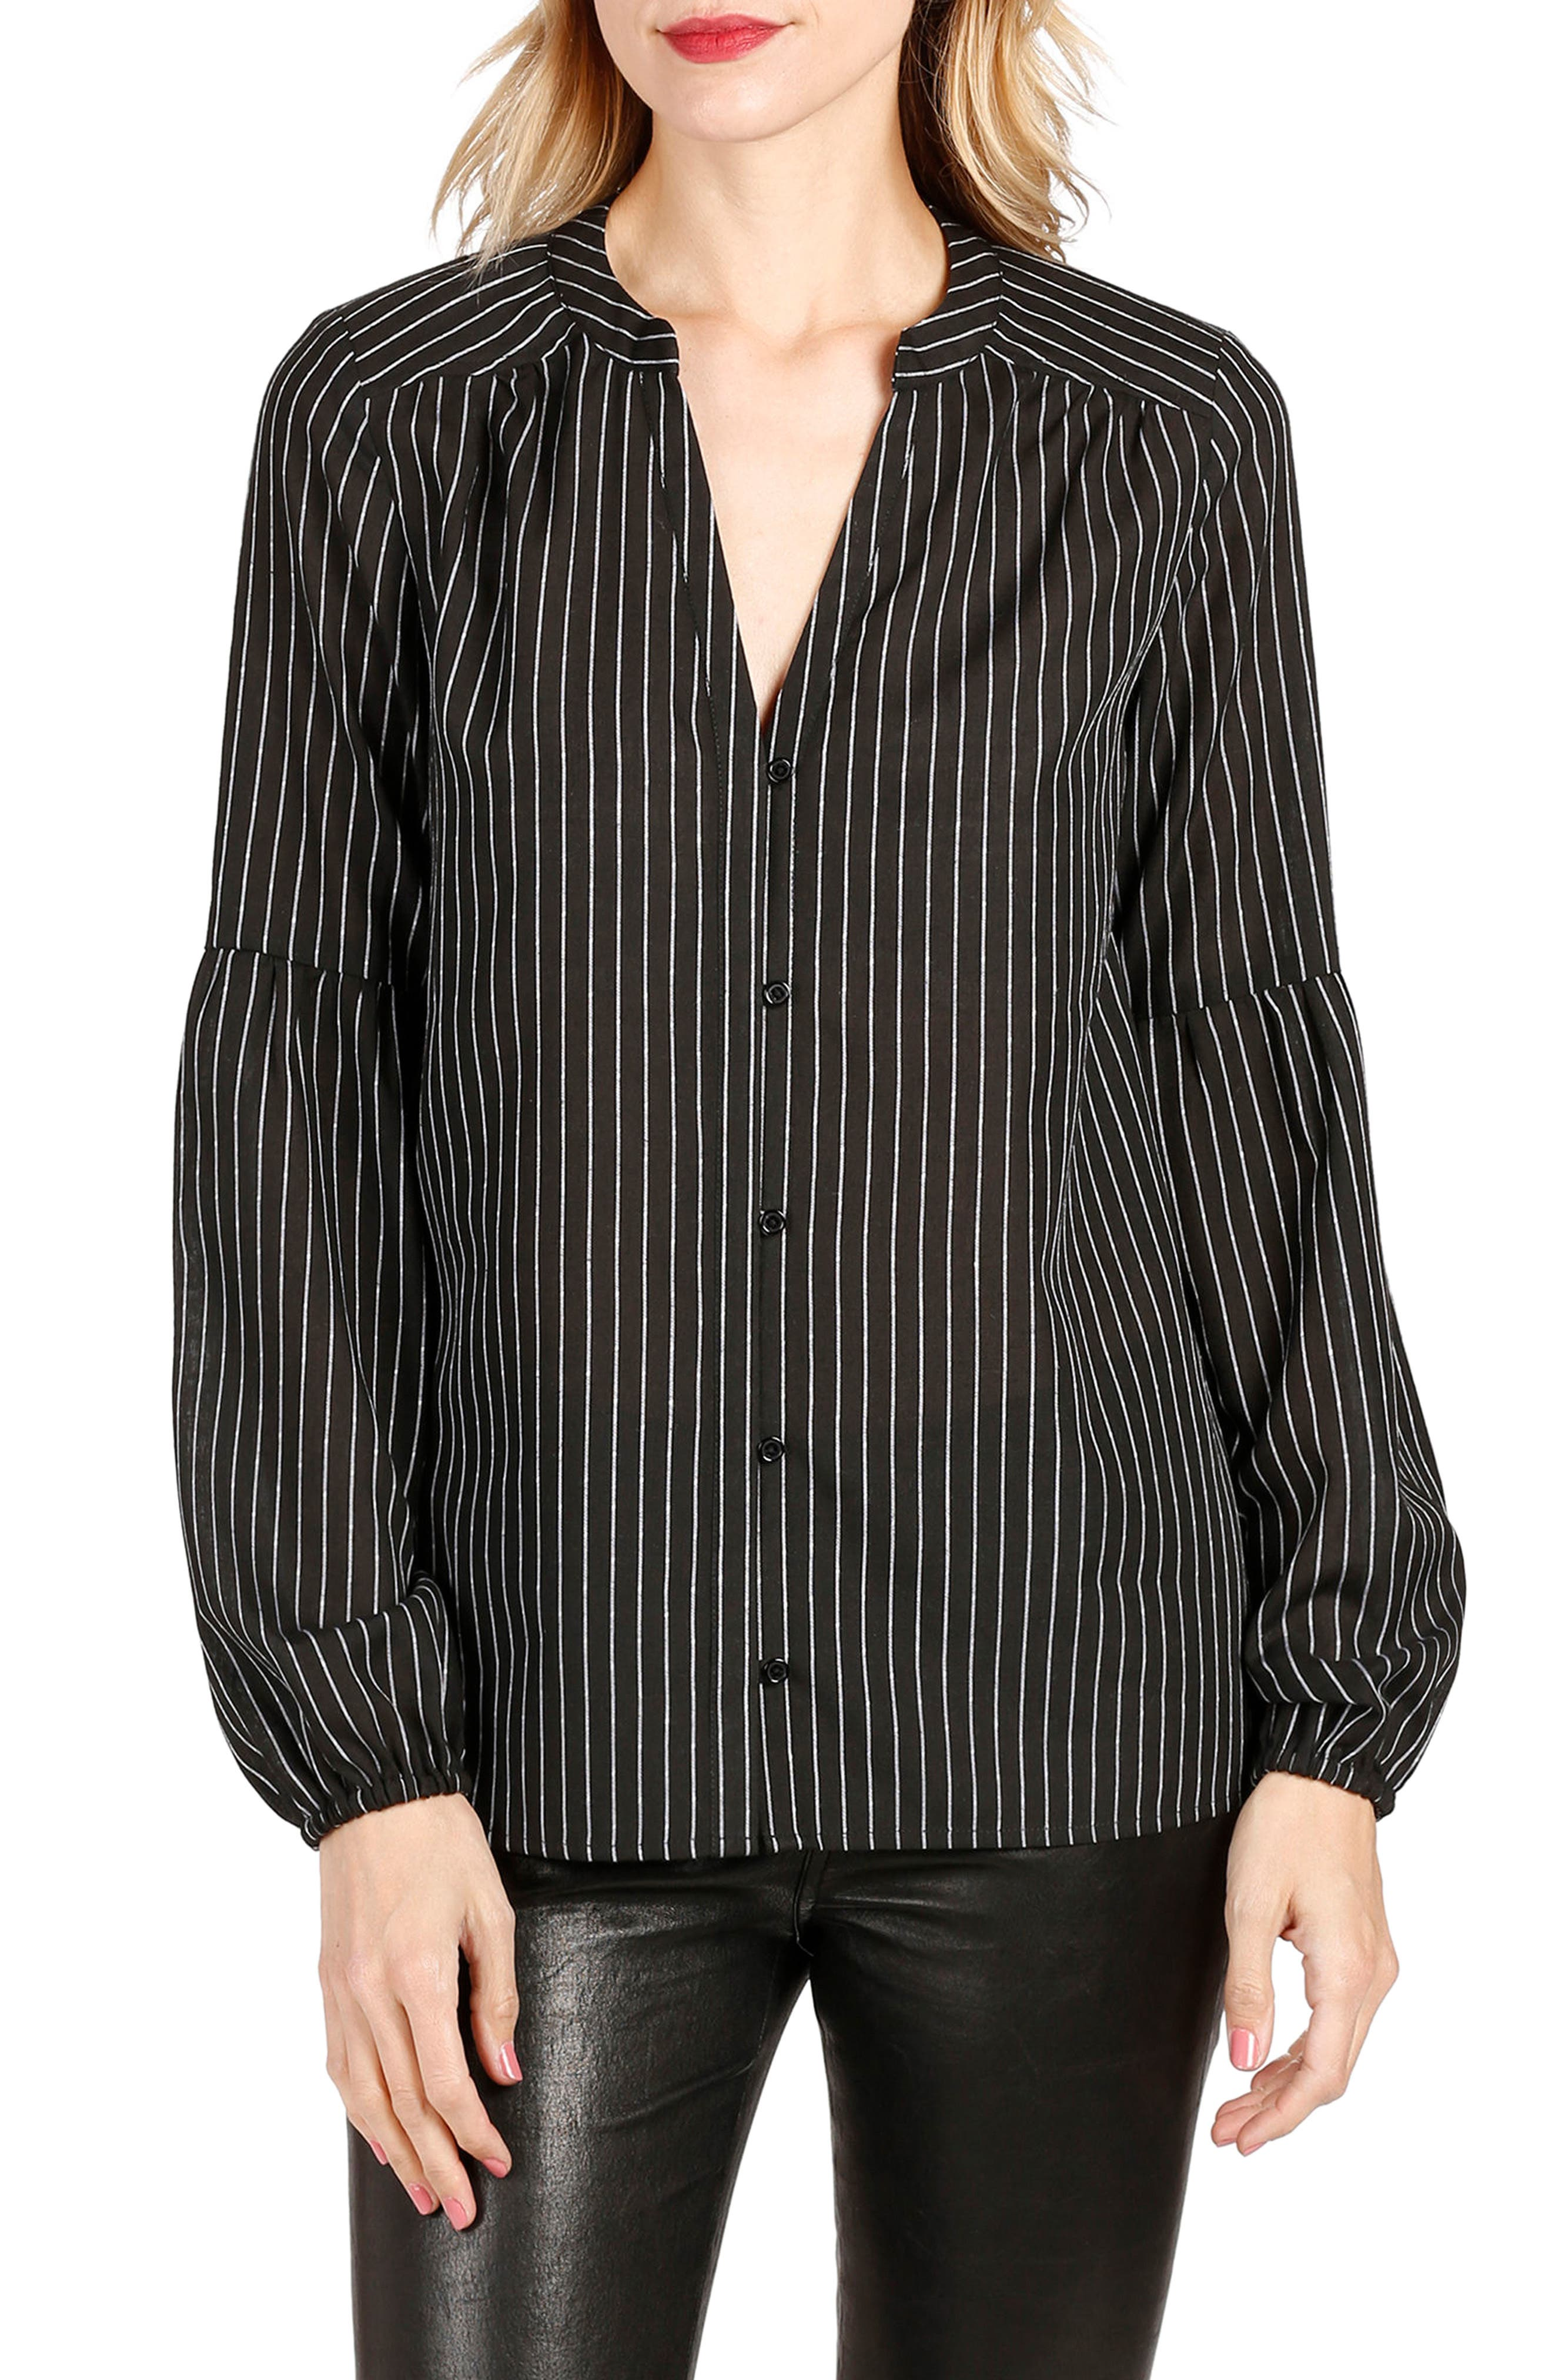 Alternate Image 1 Selected - PAIGE Emilia Pinstripe Top